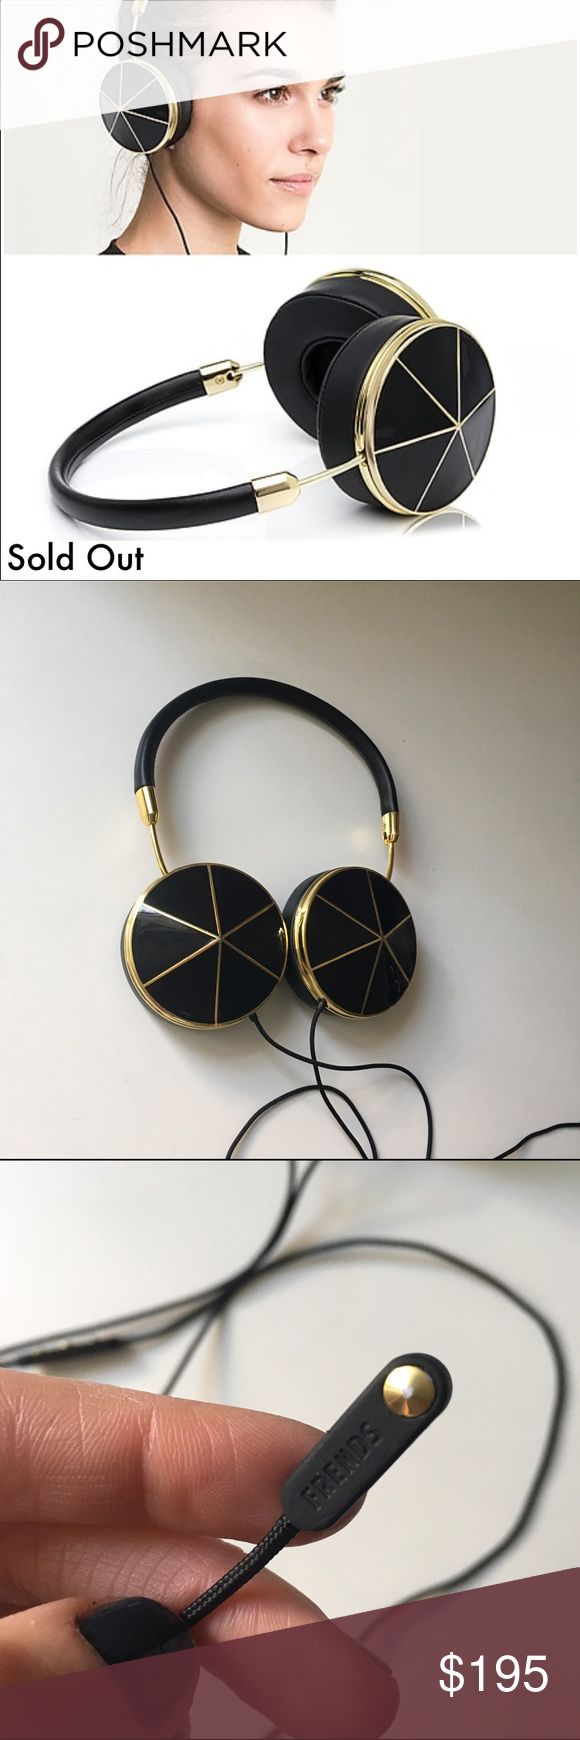 """FRENDS Taylor Black and Gold Leather Selling because I want a different color. They are excellent condition & I will clean before sending!                                                                                   ABOUT FRENDS: Three-button mic with volume, music and phone controls Adjustable, genuine leather headband.                 Collapsible to fit in bag Memory foam ear cushions: can comfortably be worn with earrings  42""""fabric-covered cord minimizes tangling Premium 360 degree…"""